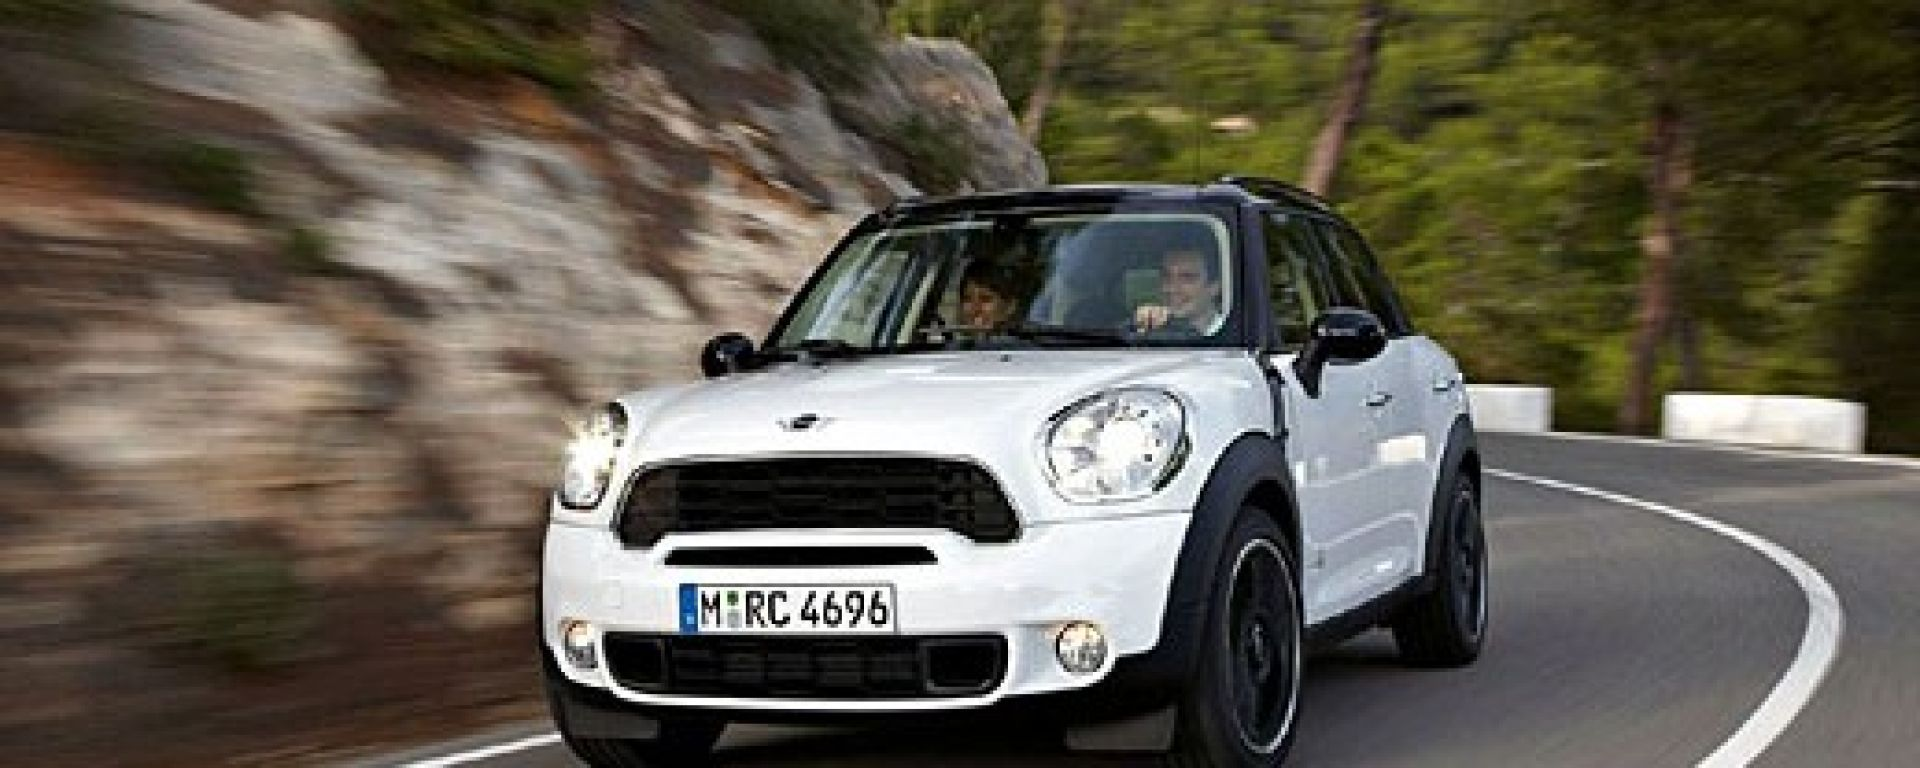 La Mini Countryman in pillole